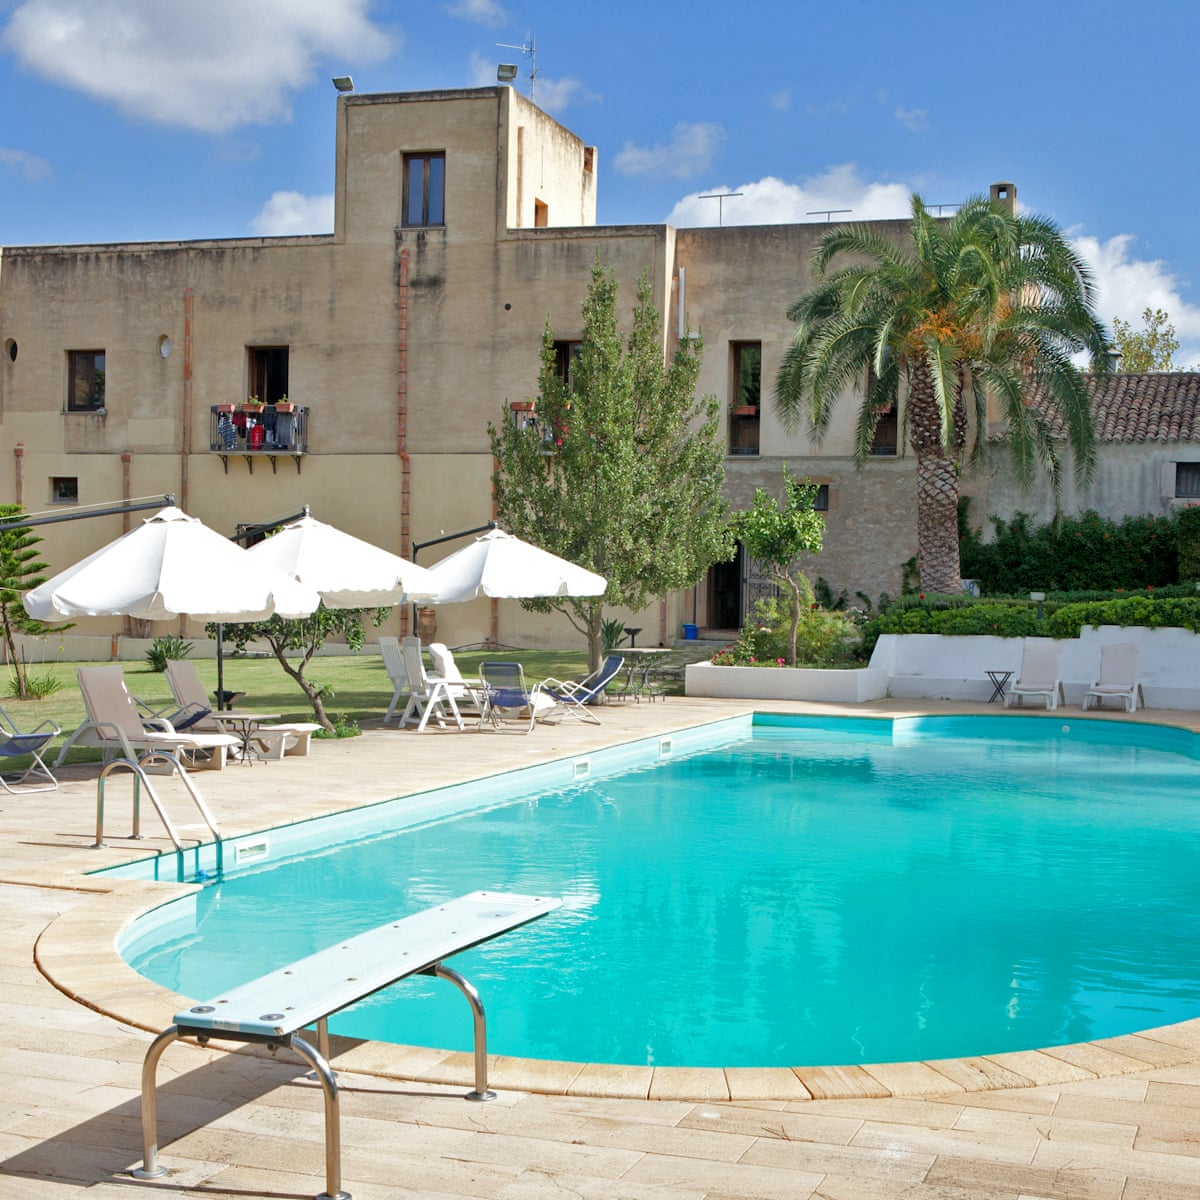 Casa & Co Milazzo 10 of the best holiday houses and b&bs in sicily and its